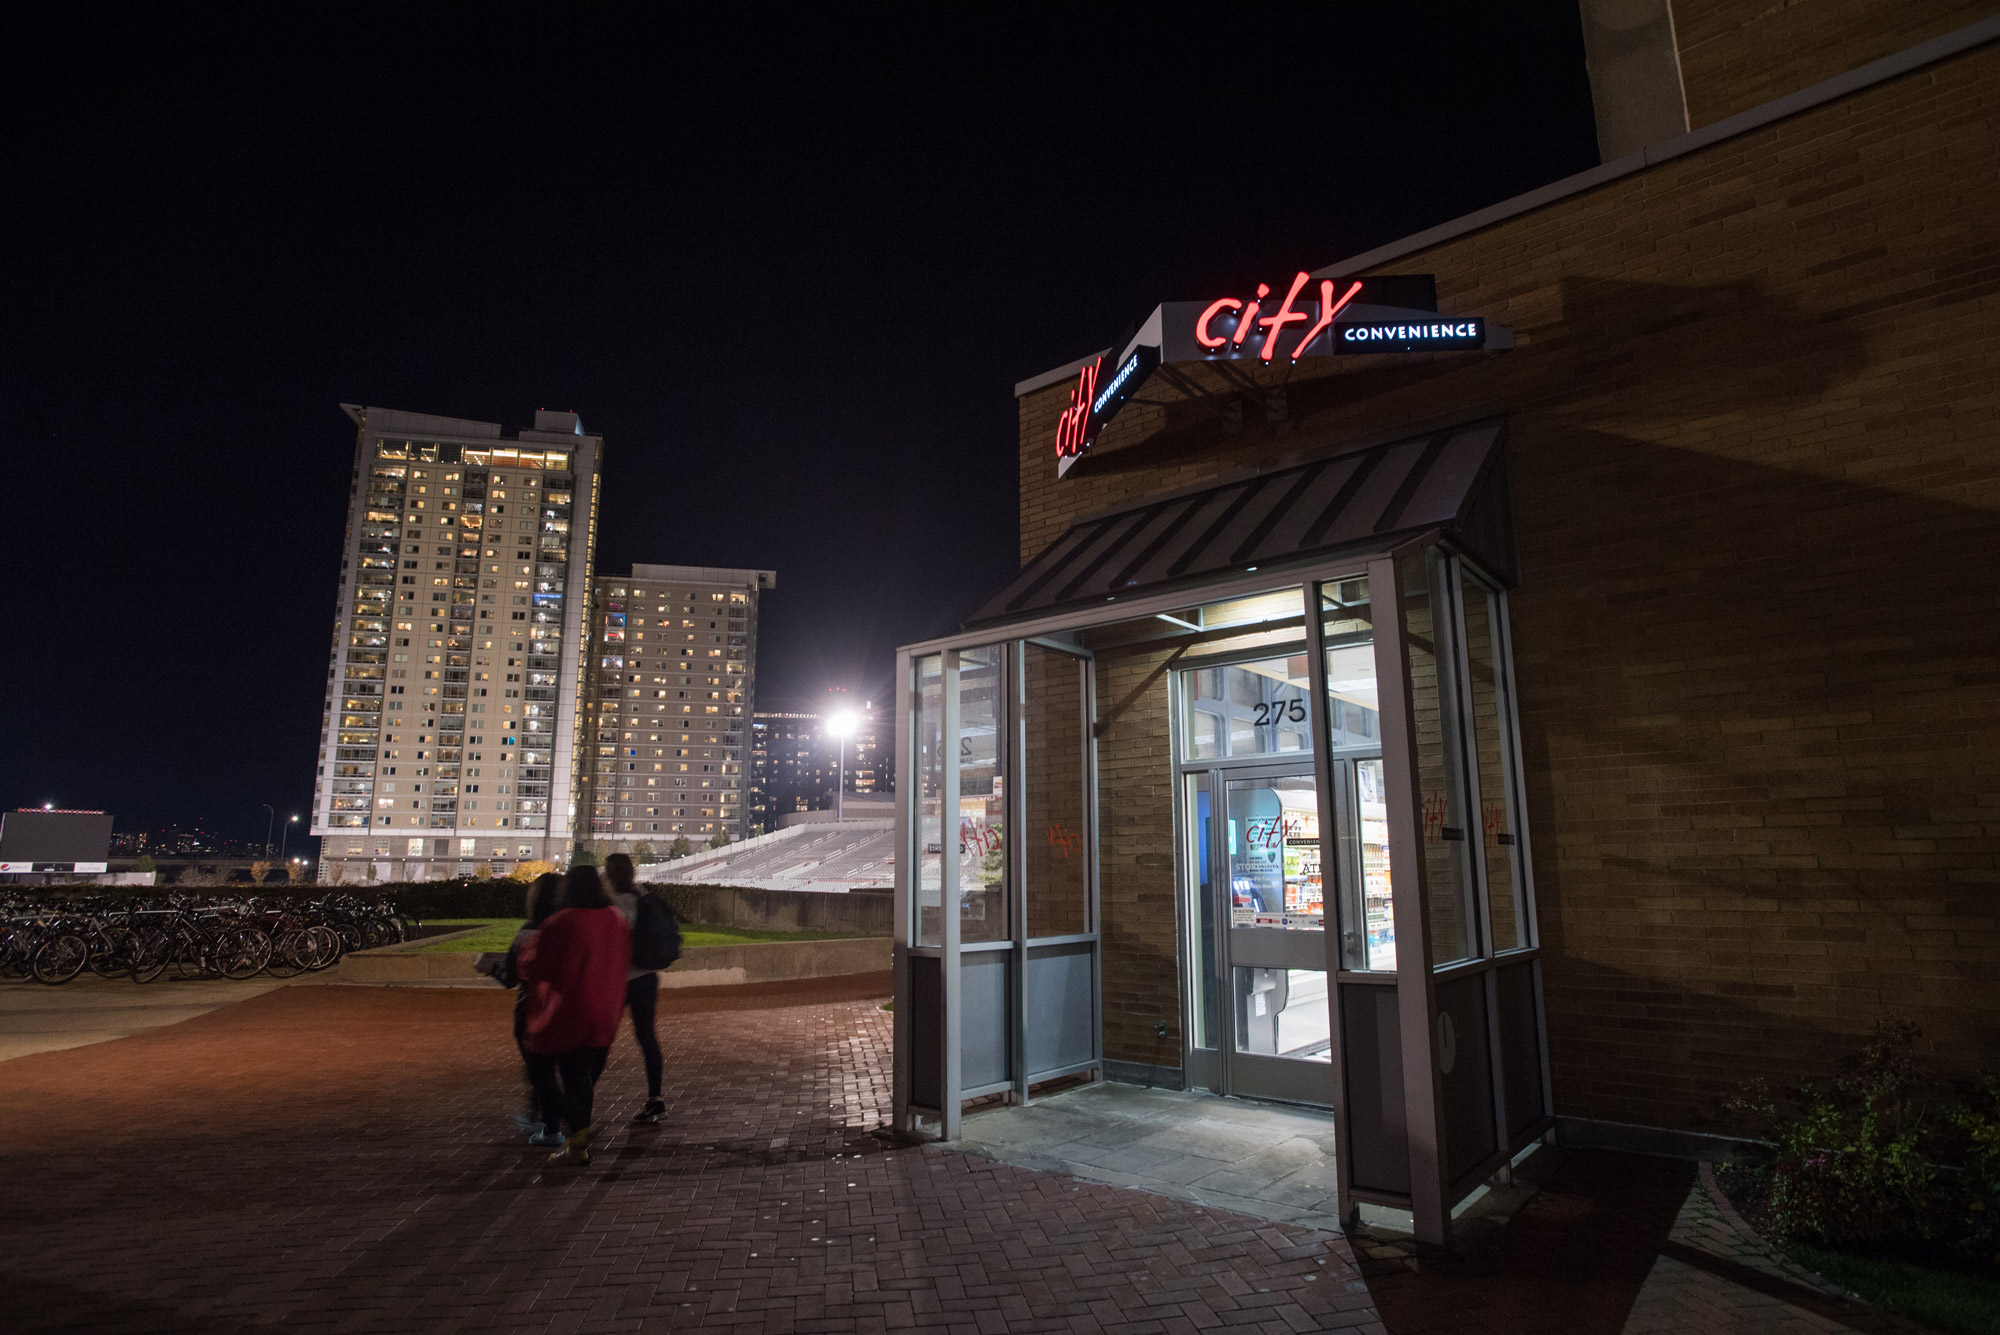 people walk out of City Convenience late at night